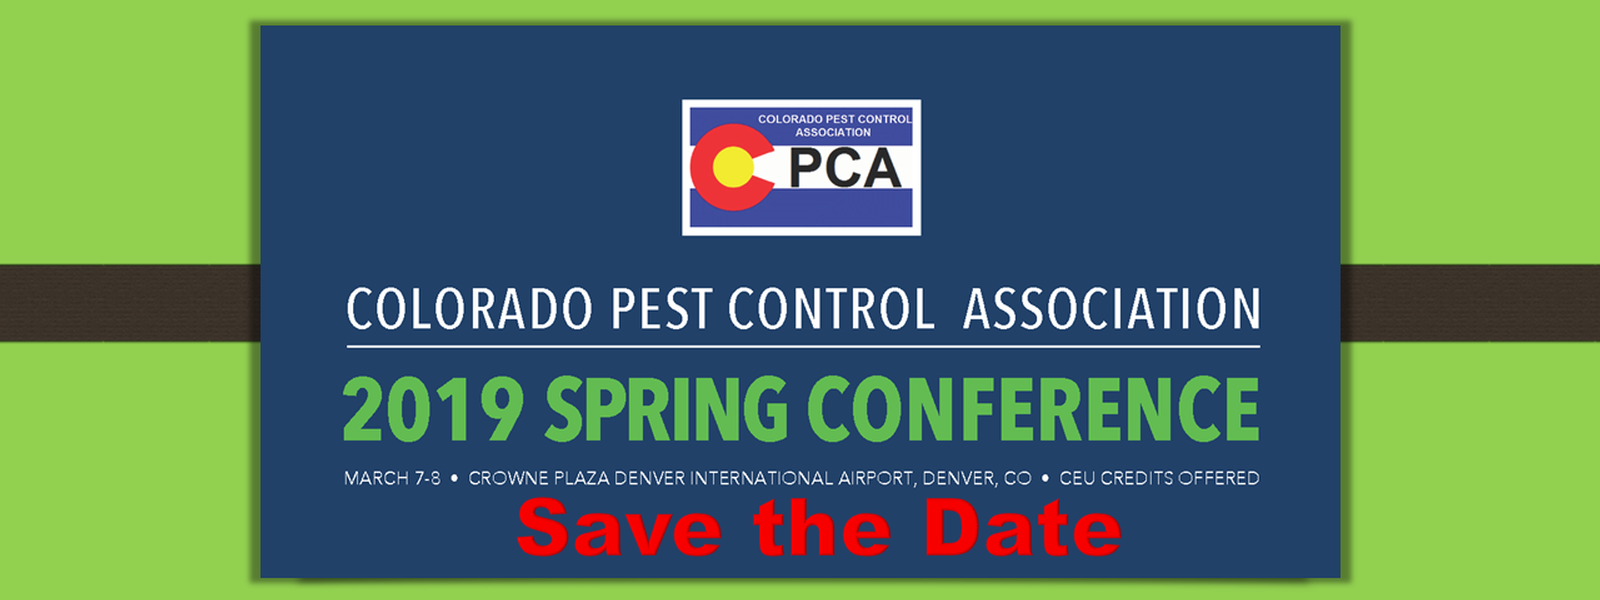 2019 Cpca Spring Conference